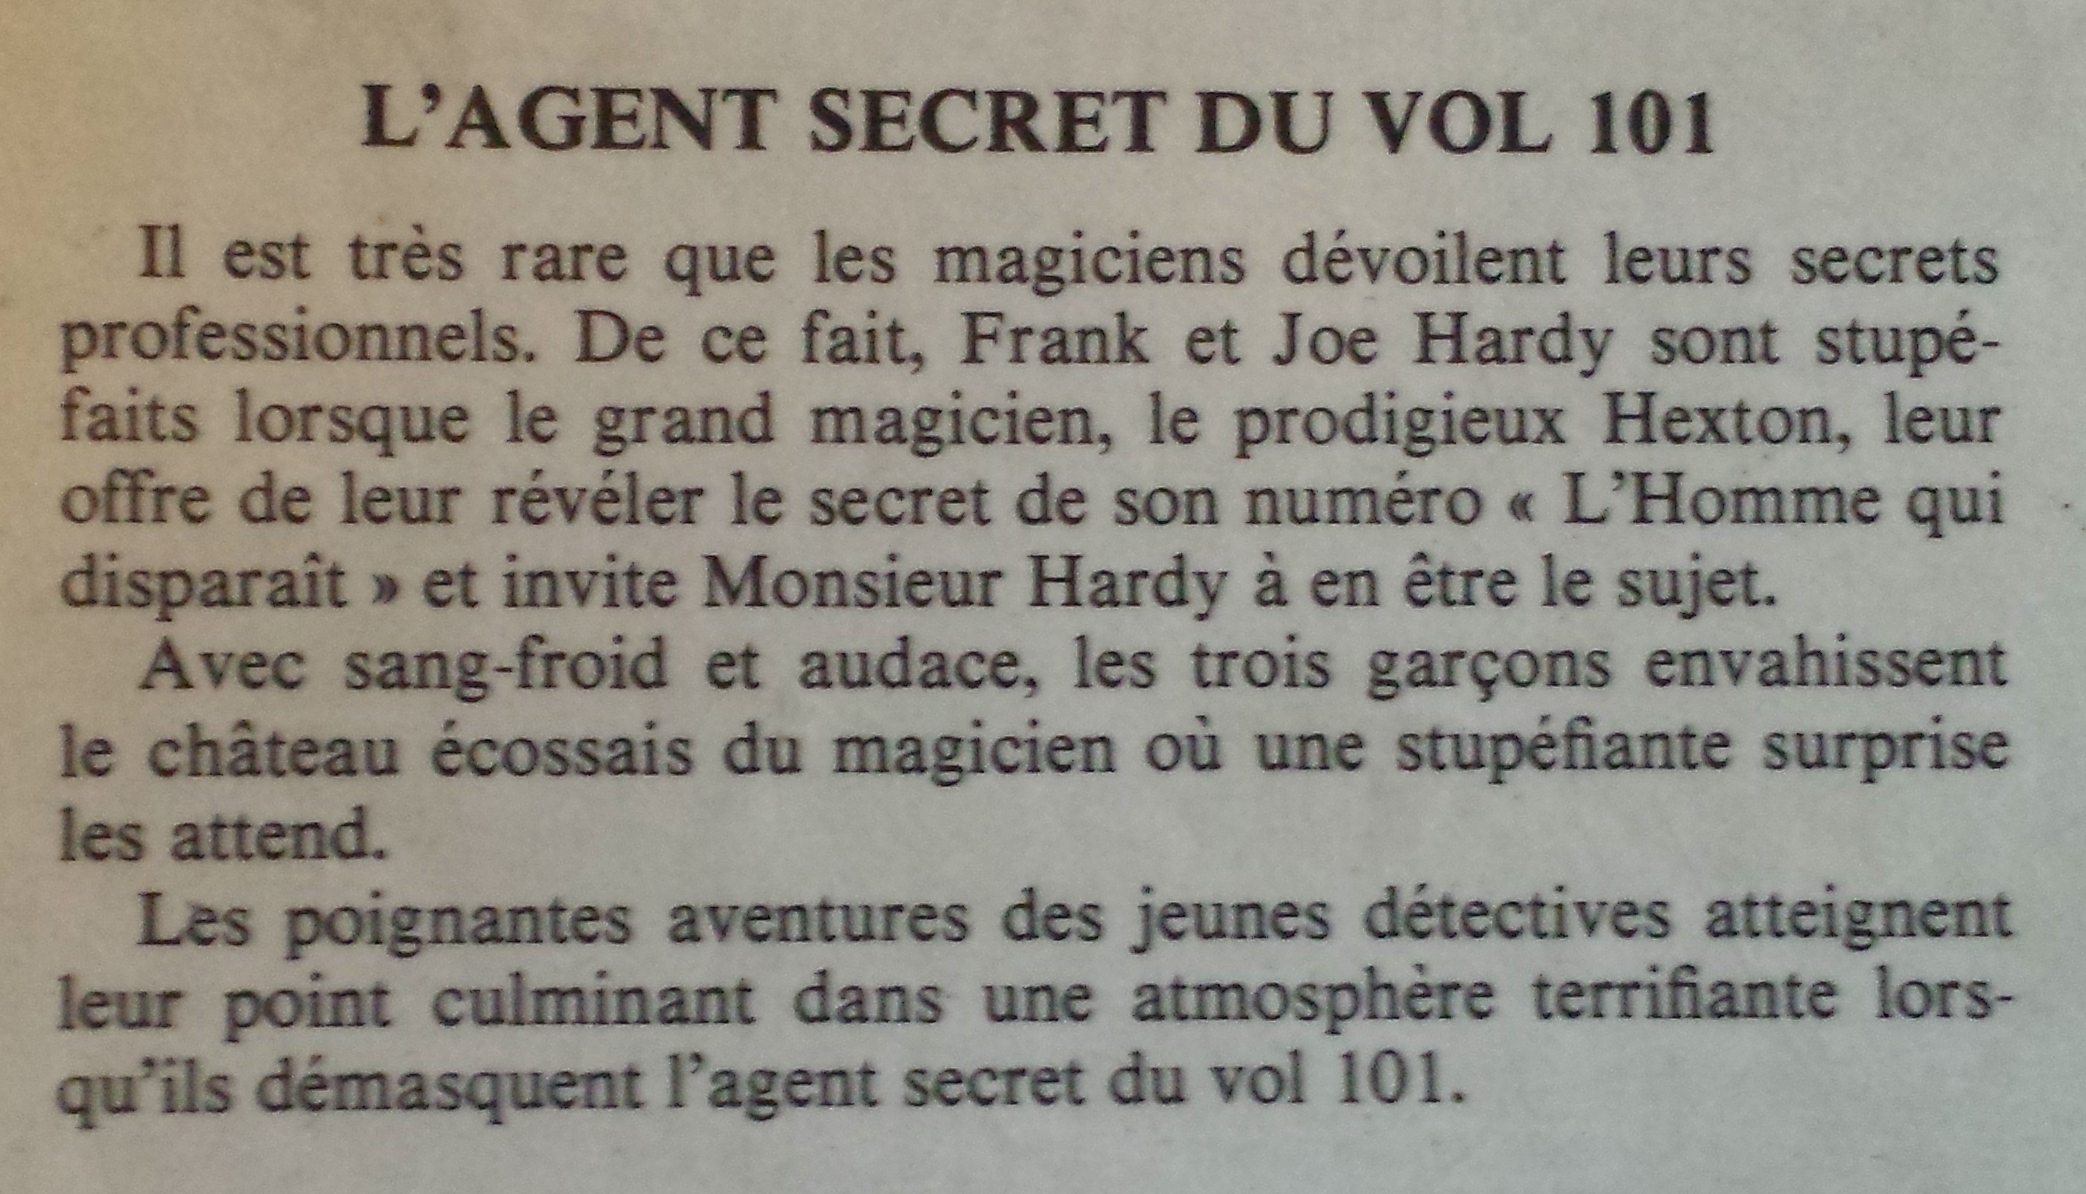 Les_freres_hardy_lagent_secret_du_vol_101_1